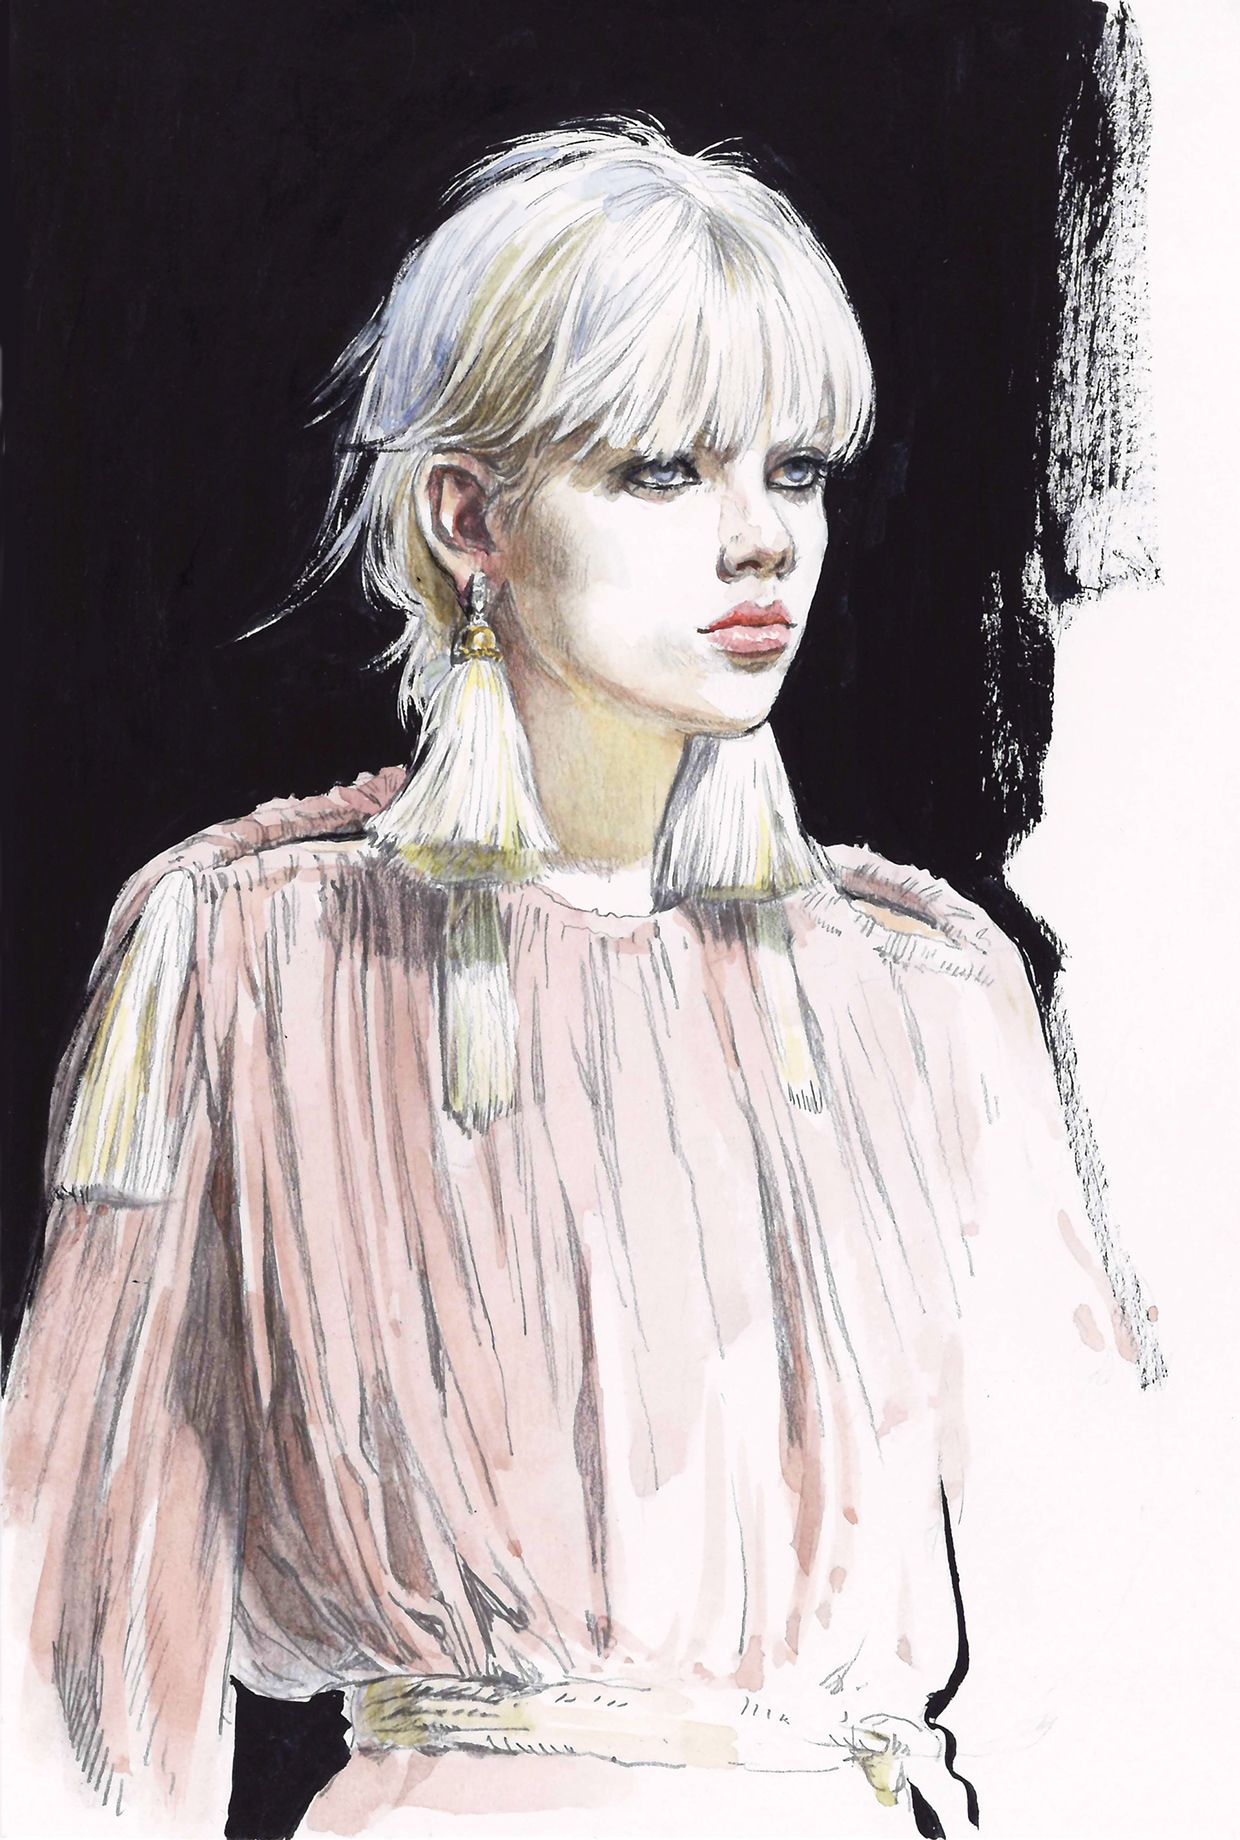 e2a7d97ba2 Fashion illustration    Diana Kuksa Woman Illustration